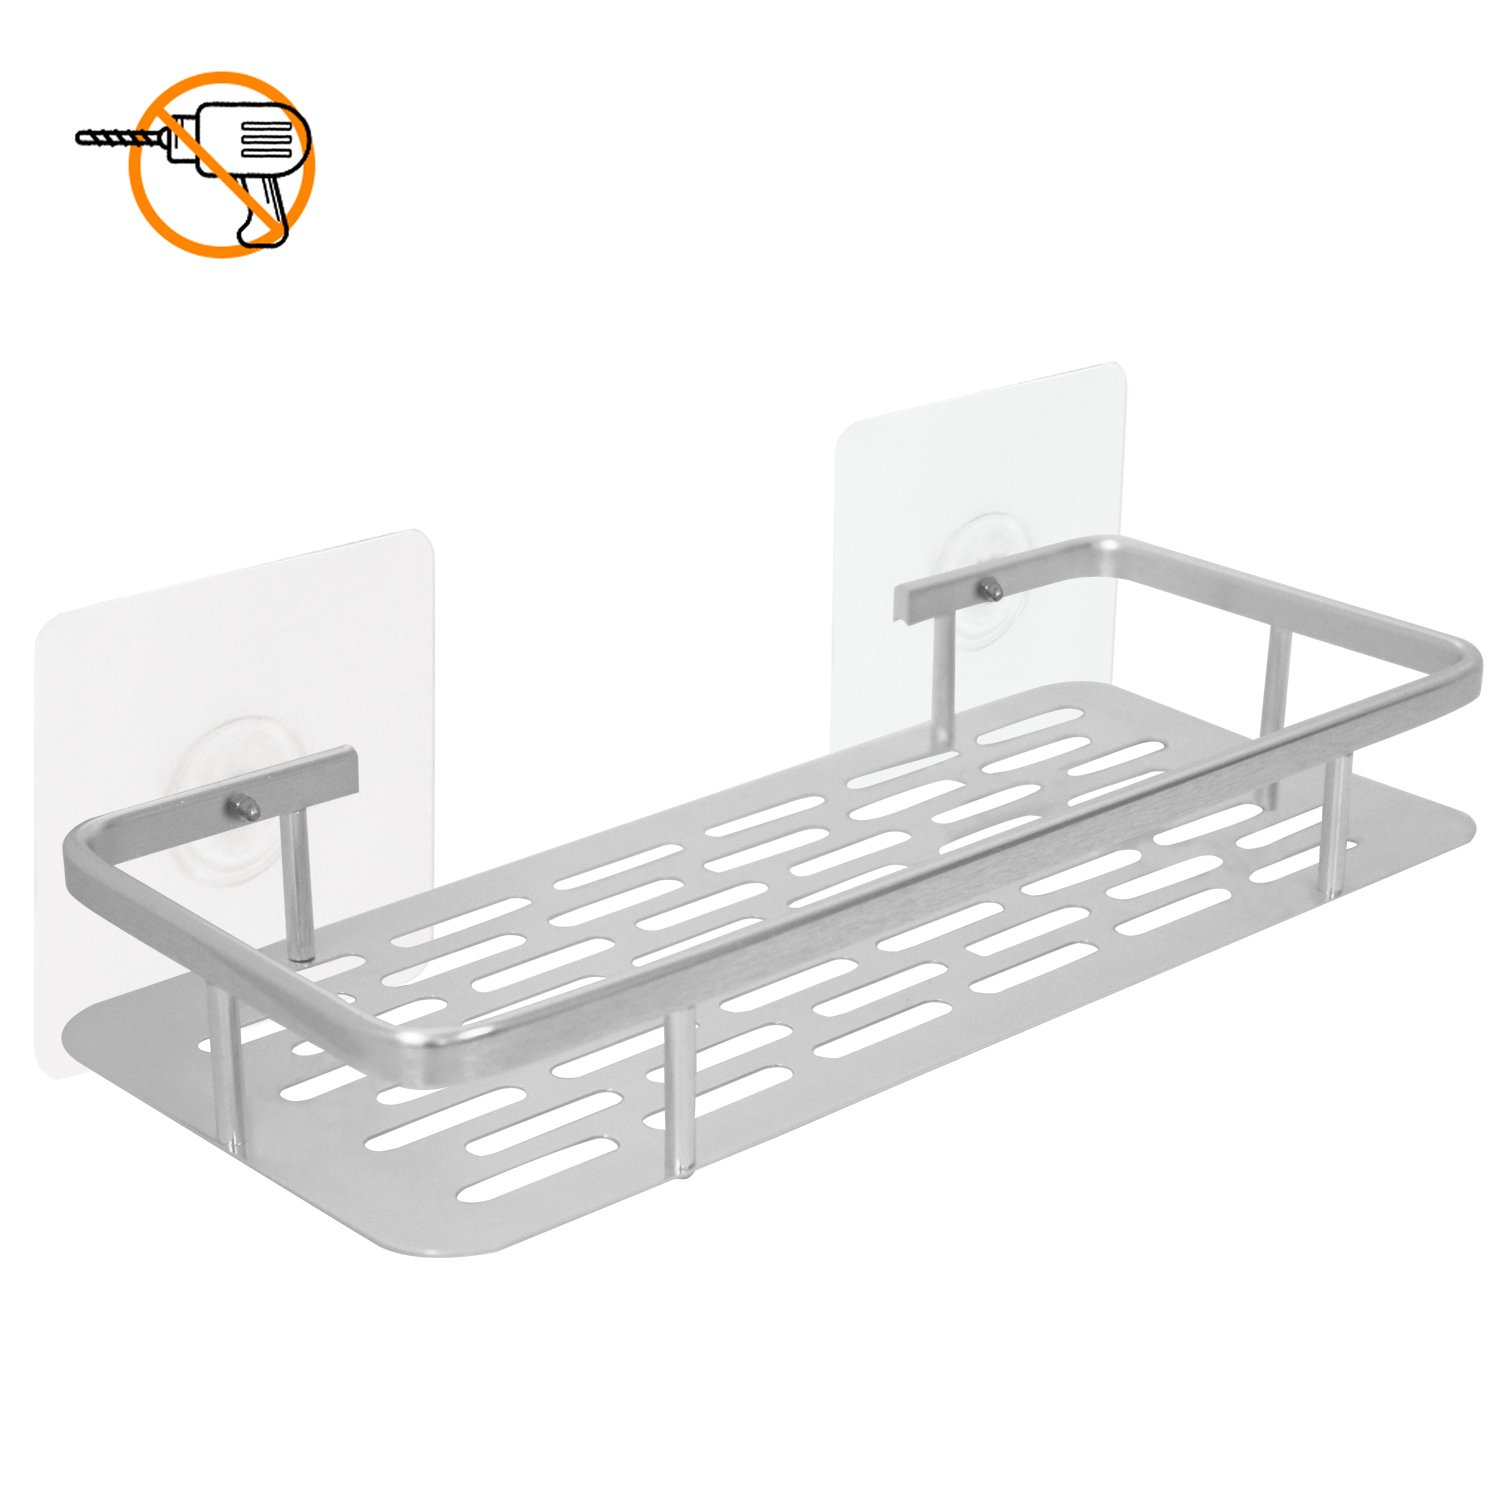 Plabingo Self Adhesive Shower Caddy Shelf,Wall Mounted Bathroom Shelf Organizer, Shampoo Conditioner Holder, for Ceramic Tile, Plastic, Glass, Metal, Wood & More,No Drilling,TZ-5091, Aluminum Alloy